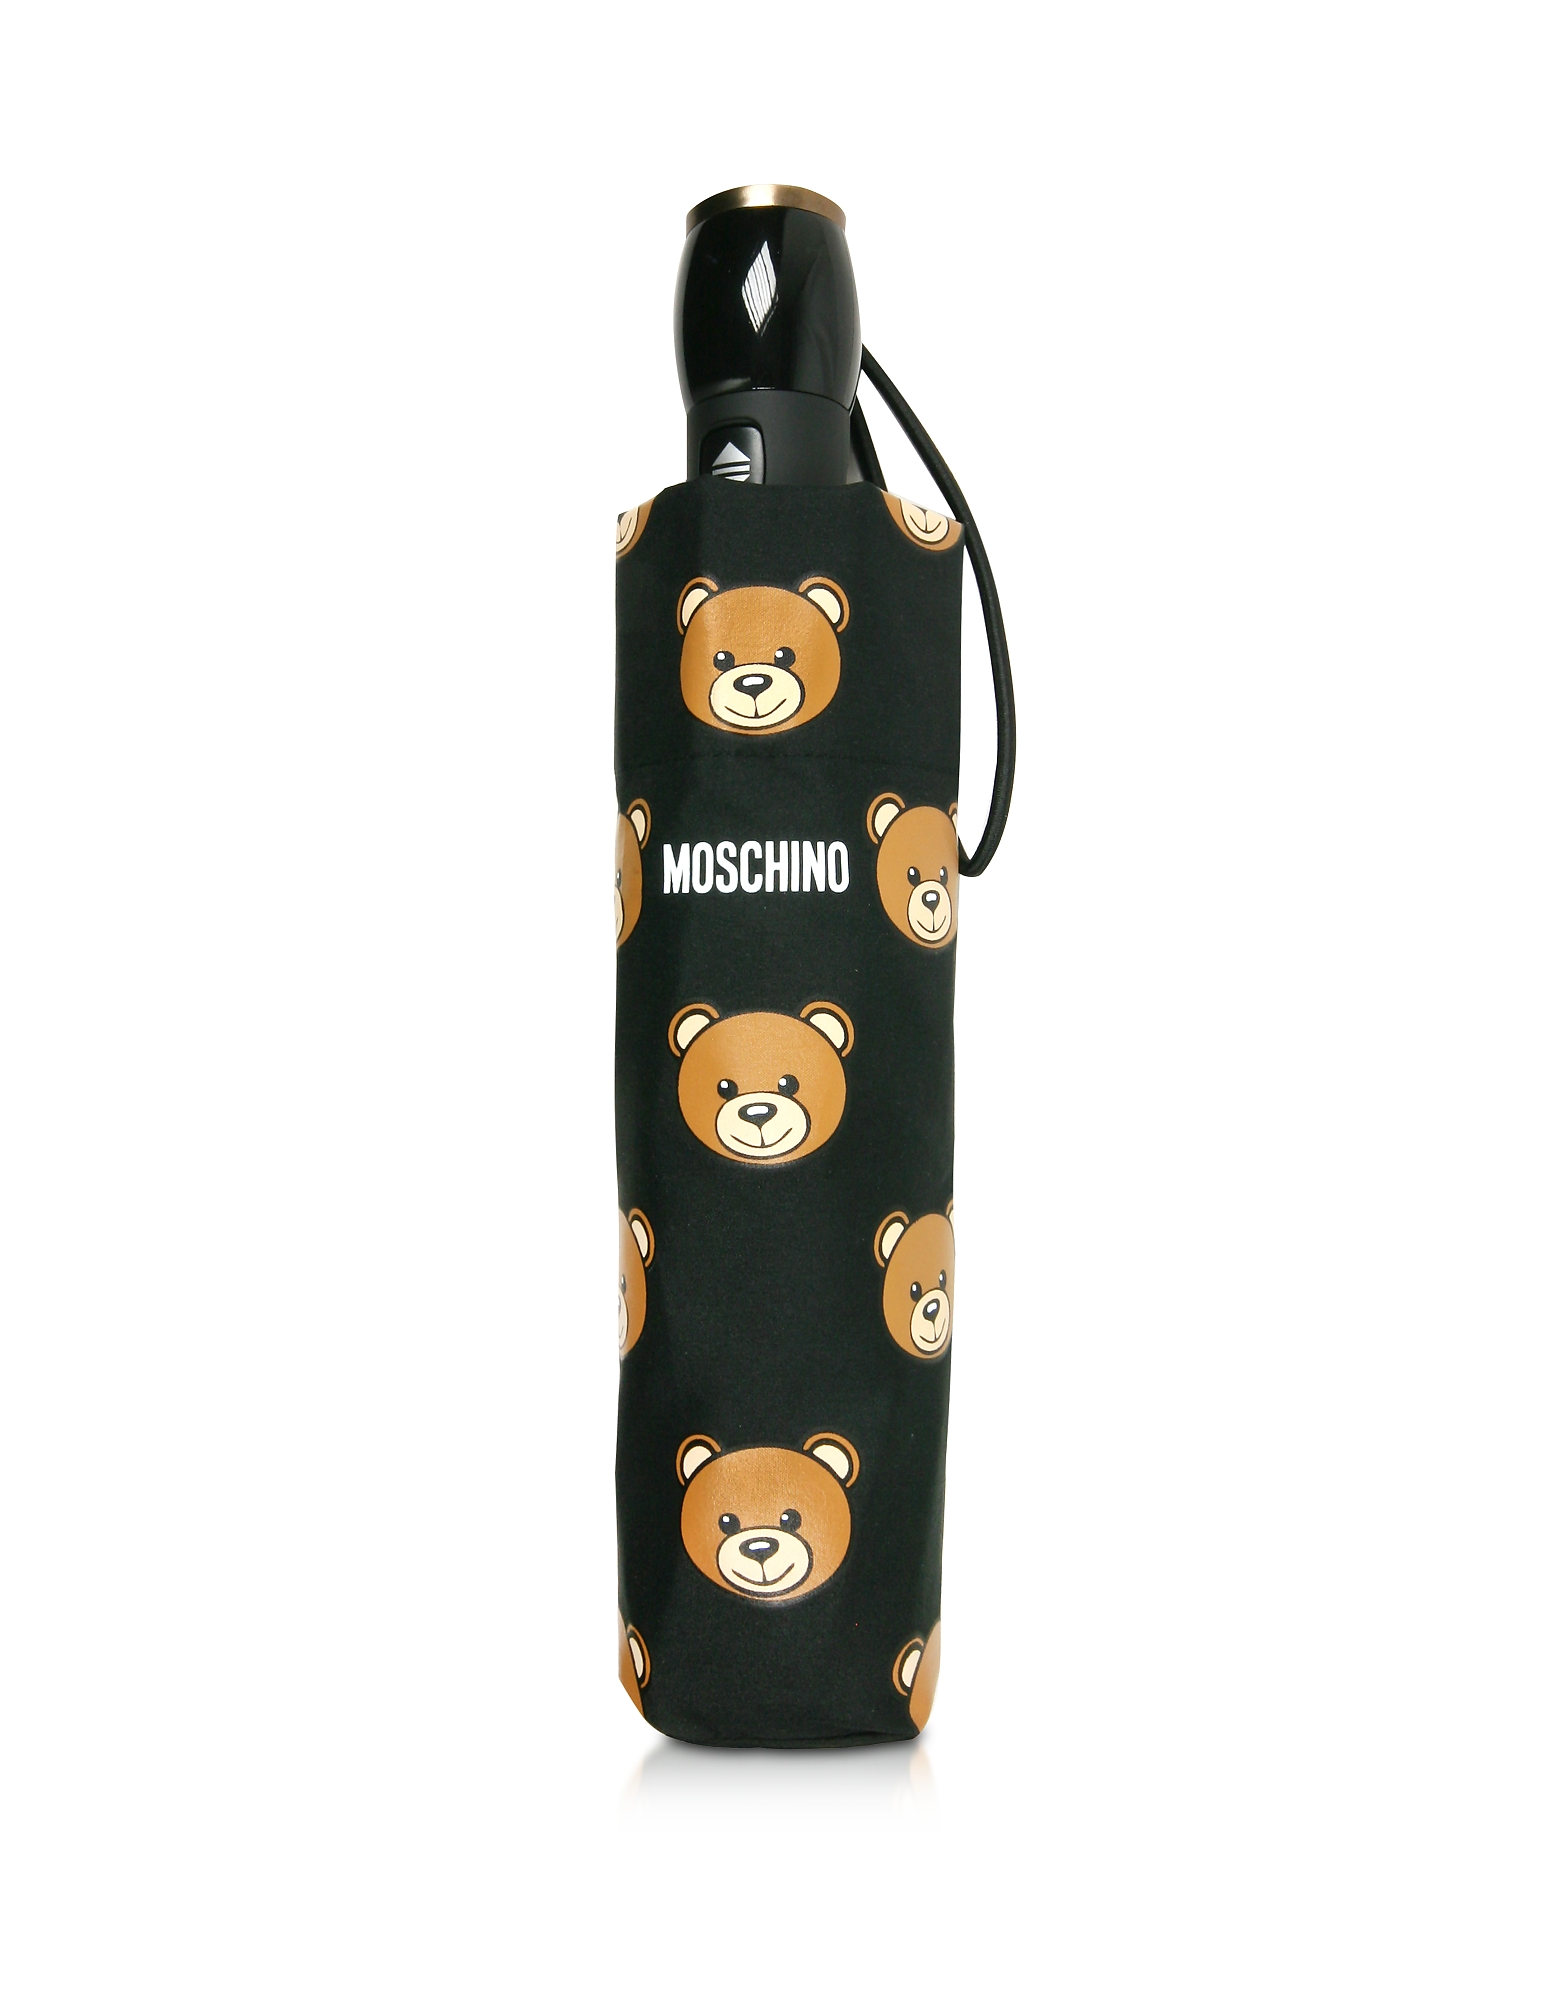 Moschino Umbrellas, Teddy Heads Black Mini Umbrella